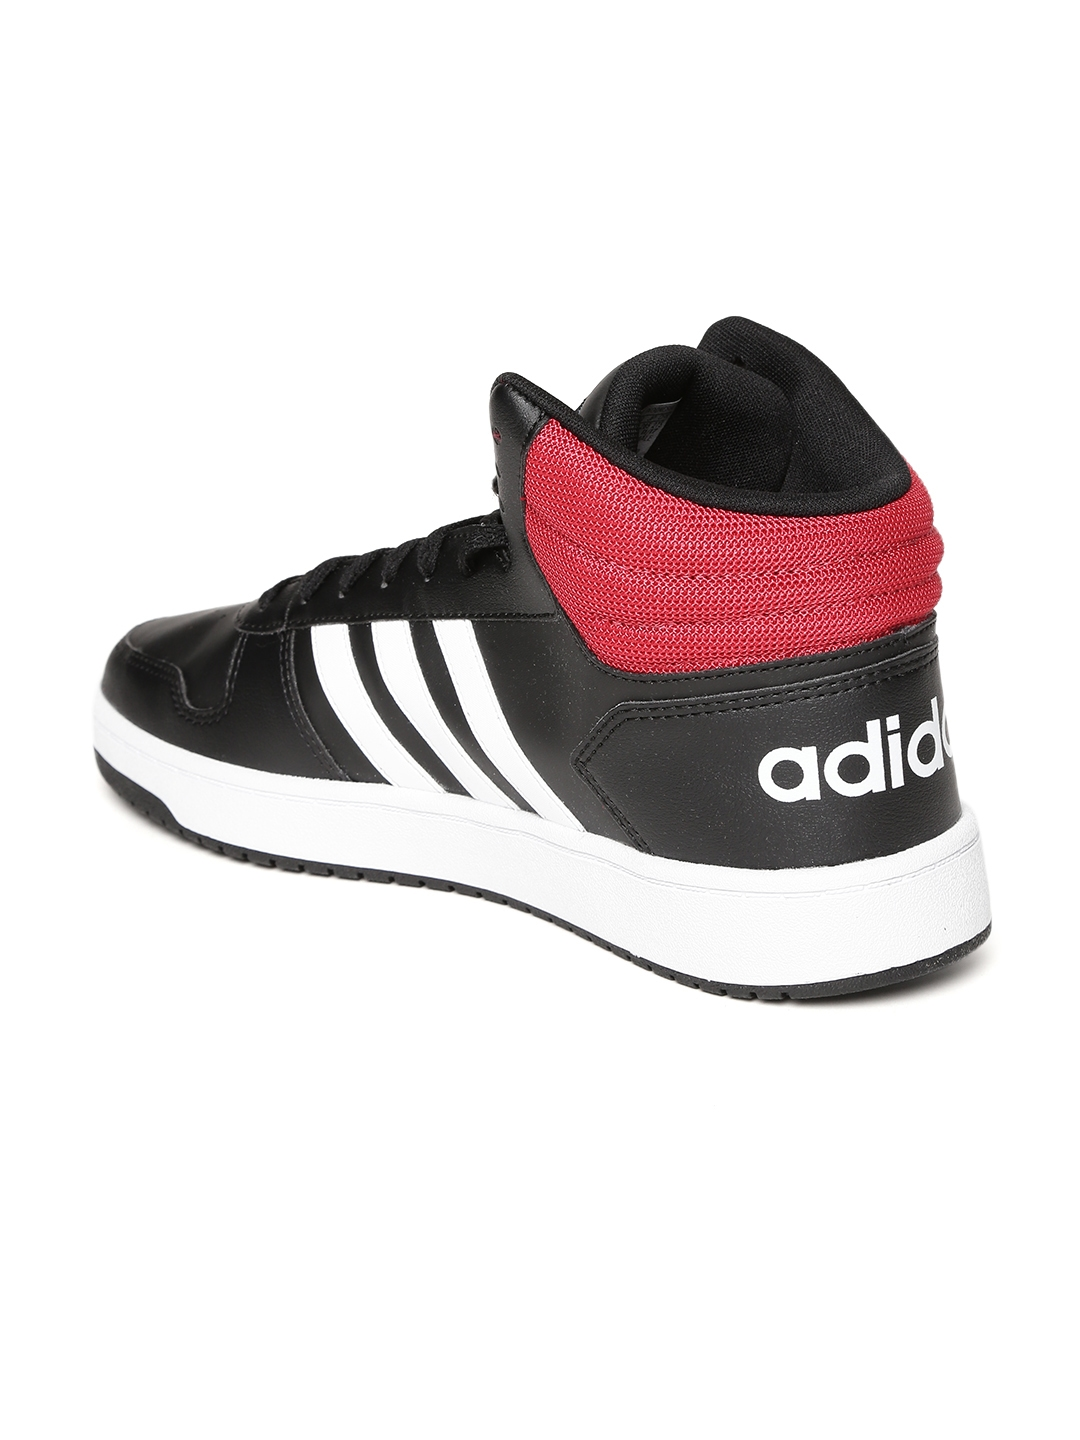 Buy ADIDAS Men Black HOOPS 2.0 MID Sneakers - Casual Shoes for Men ... d47cb6855